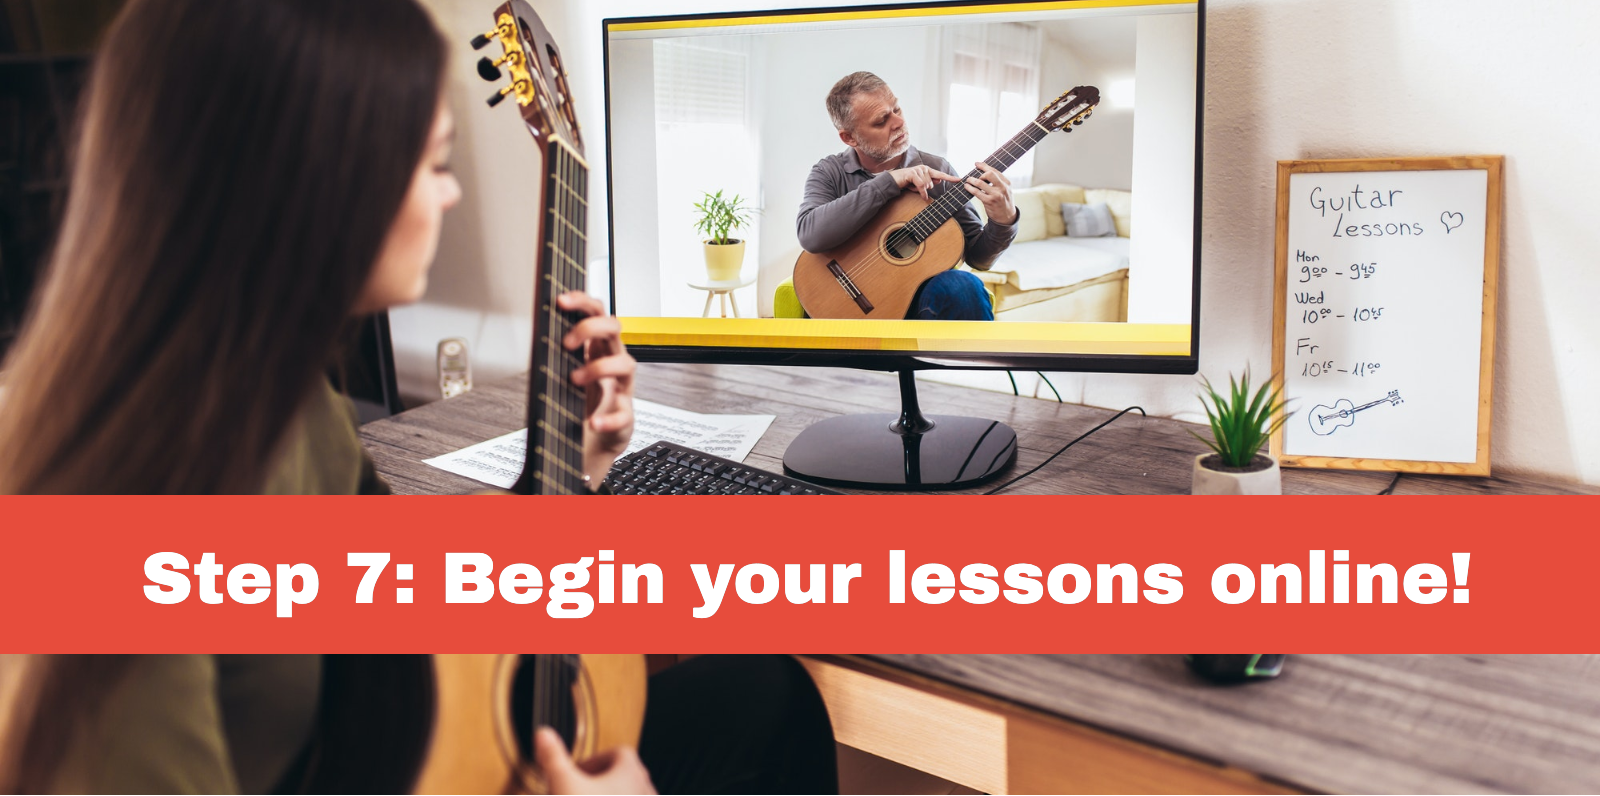 Step 7: Begin your lessons online!